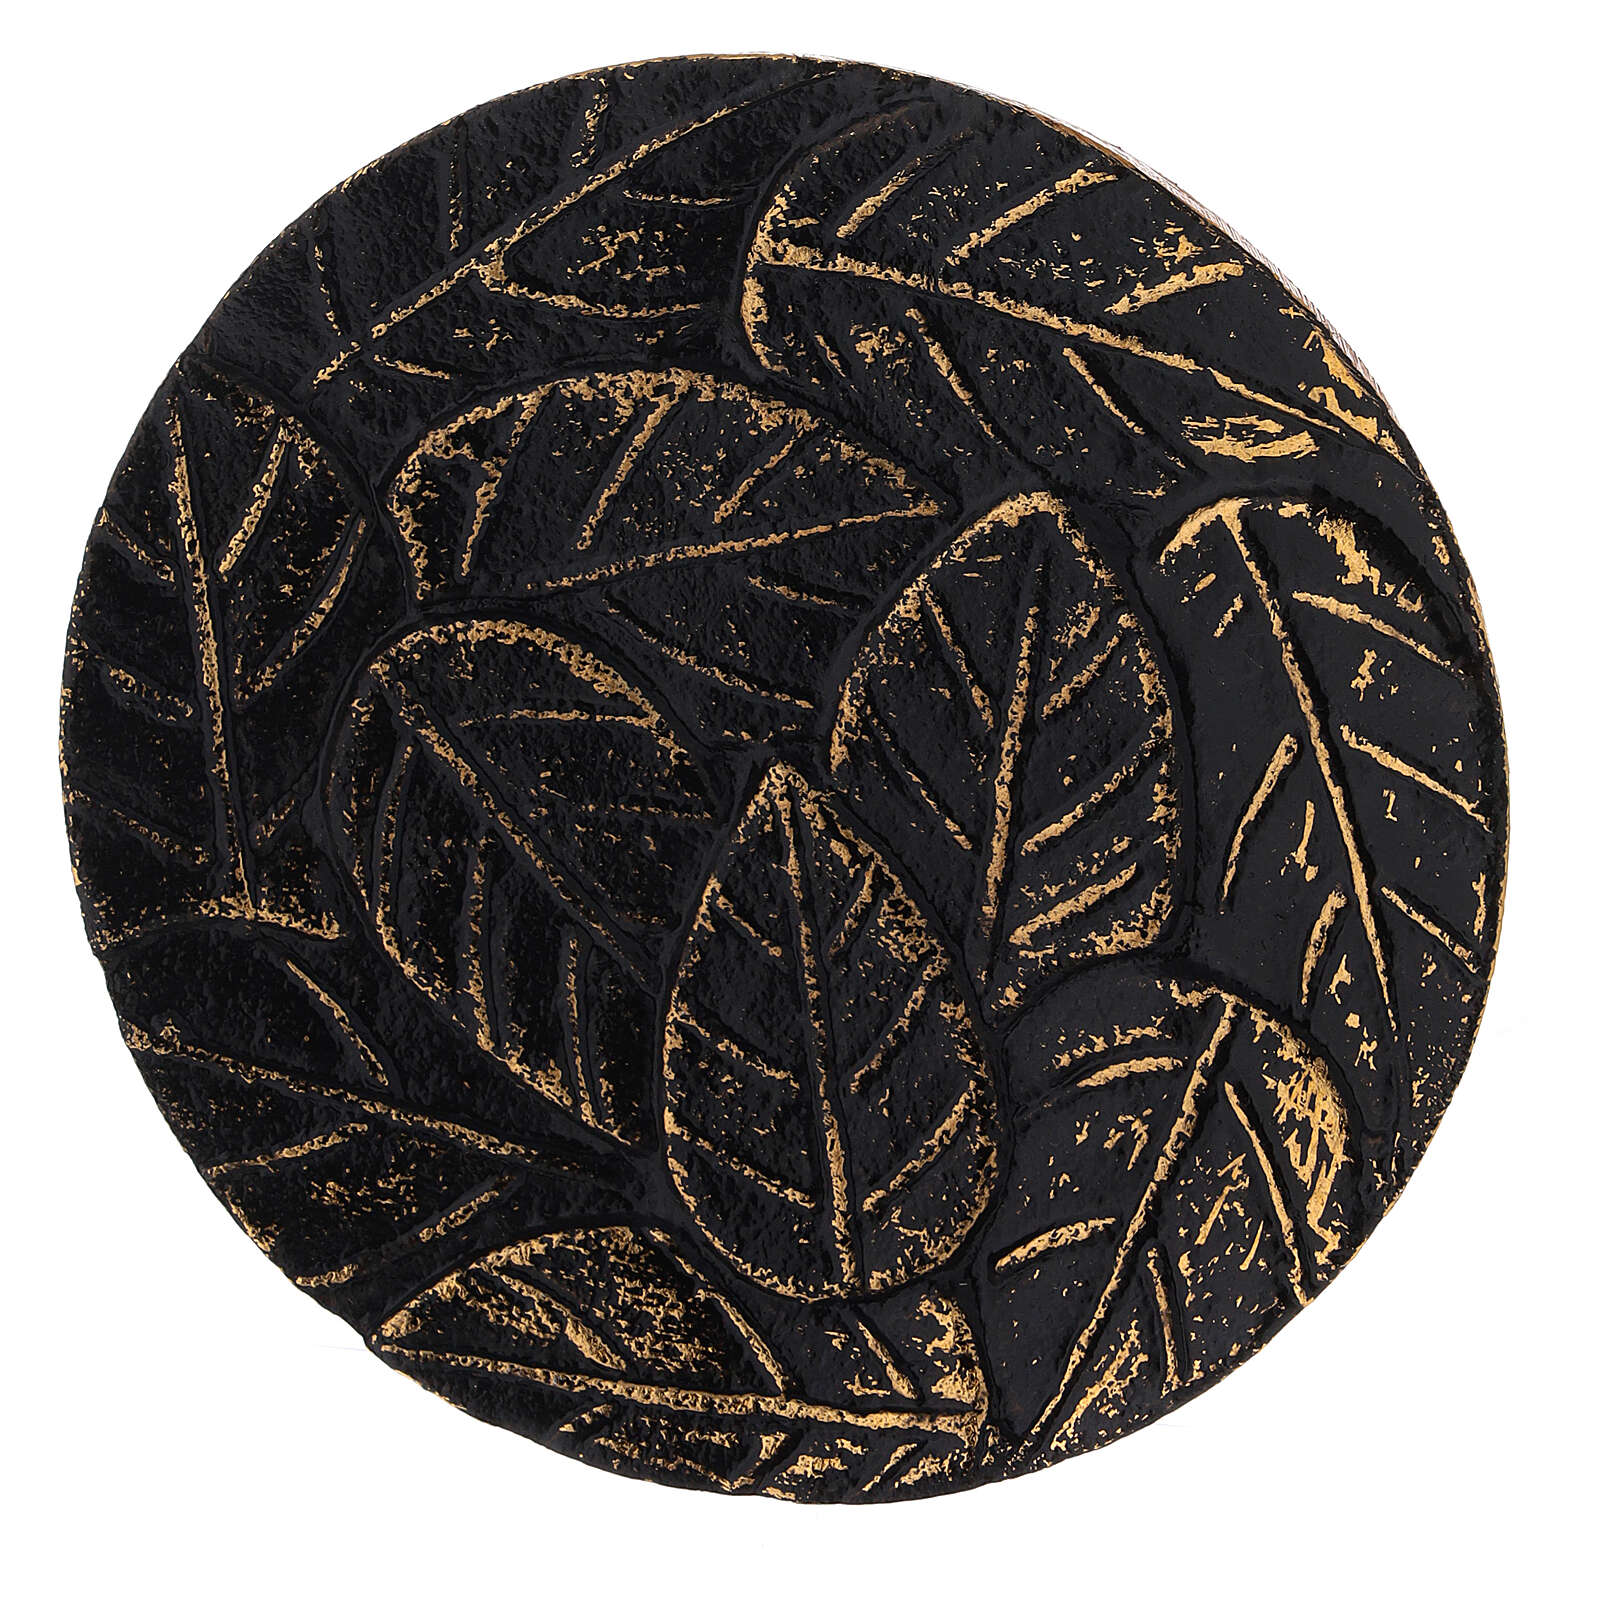 Black aluminium plate for candles leaves decoration with gold details d. 4 3/4 in 3